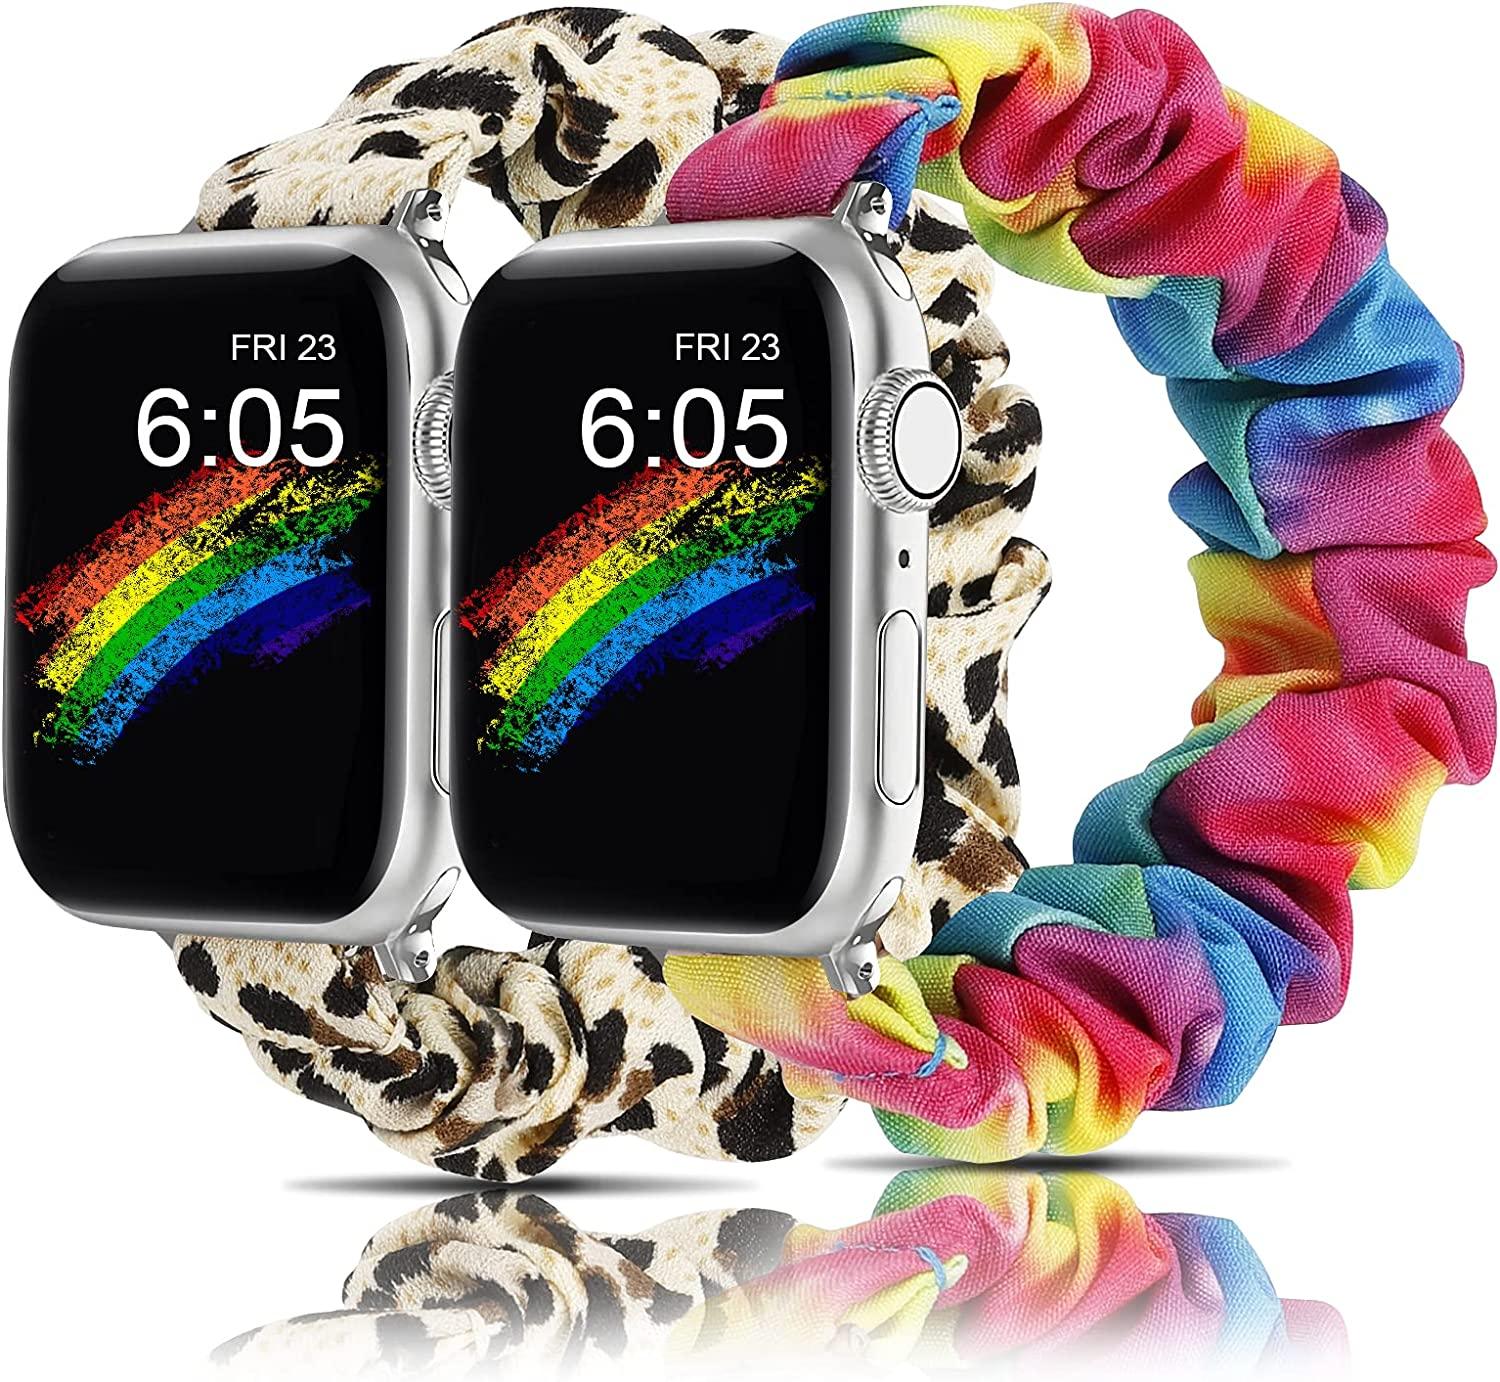 Wearlizer 2 Packs Compatible with scrunchies apple watch band 38mm 40mm 42mm 44mm cute Pattern Printed Fabric Replacement women Elastic Stretchy Scrunchy Band for iWatch Series 6 5 4 3 2 1 SE